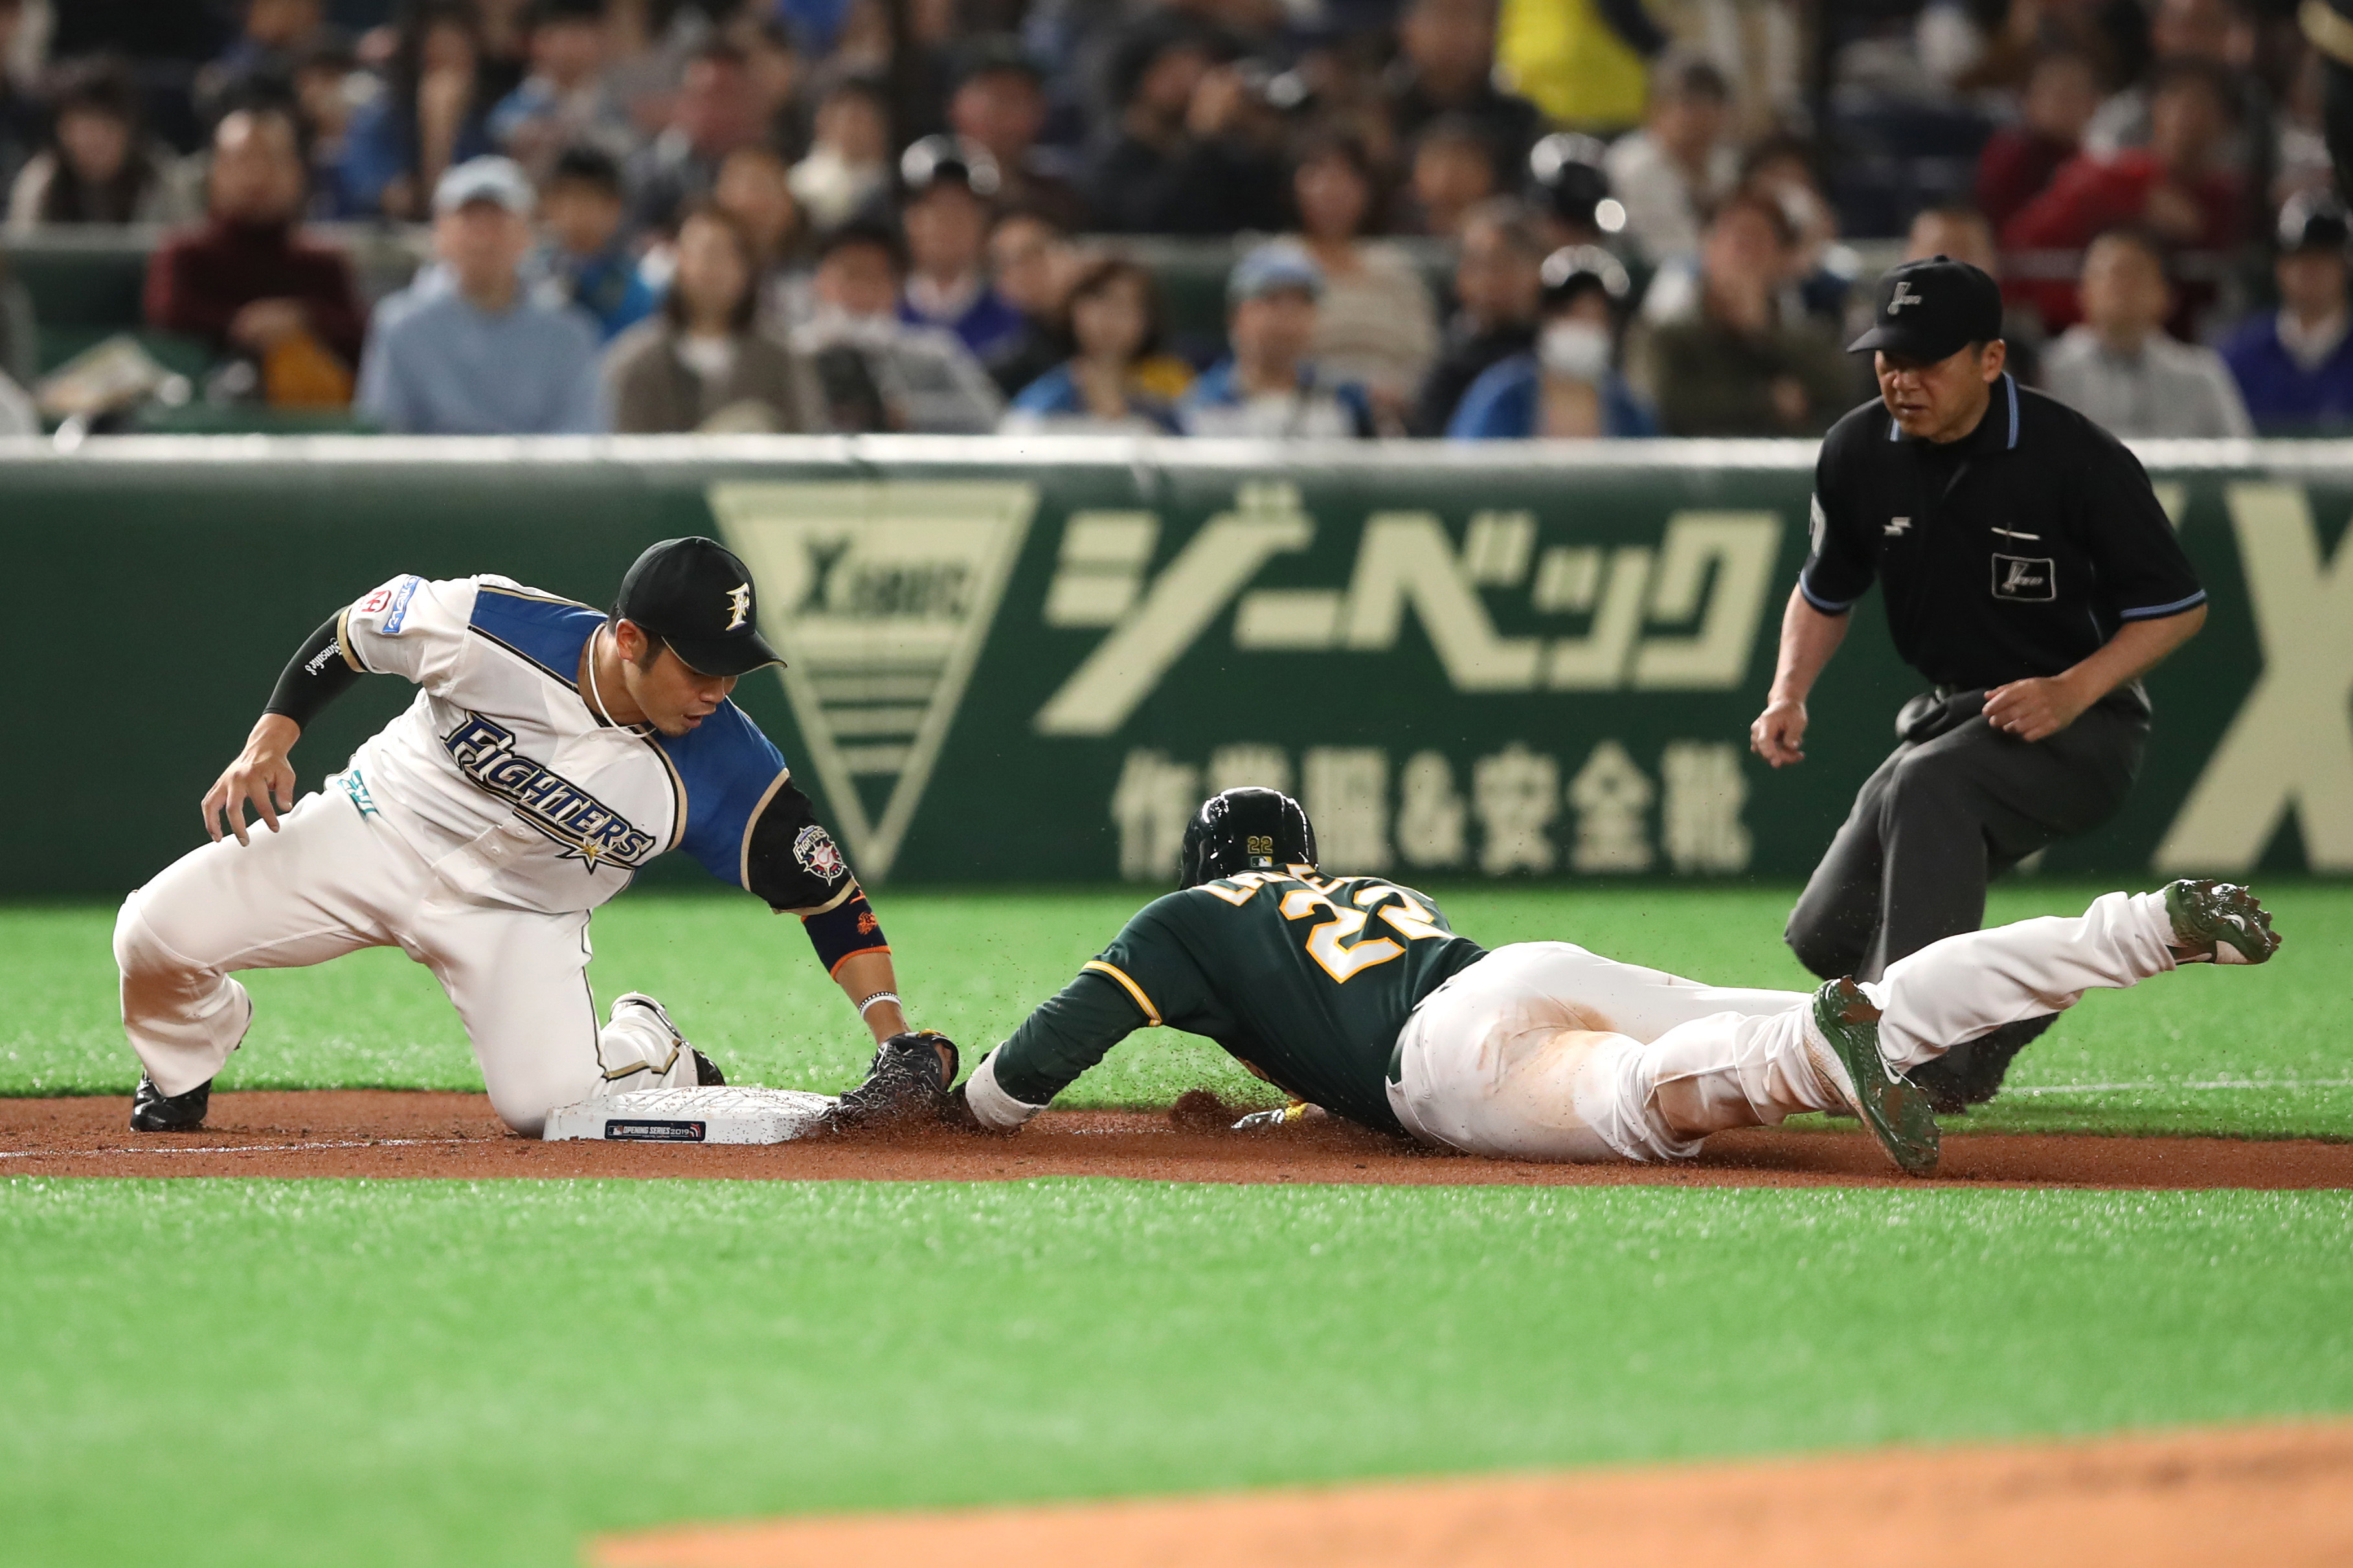 Notes From the Field: Live From the NPB - Baseball